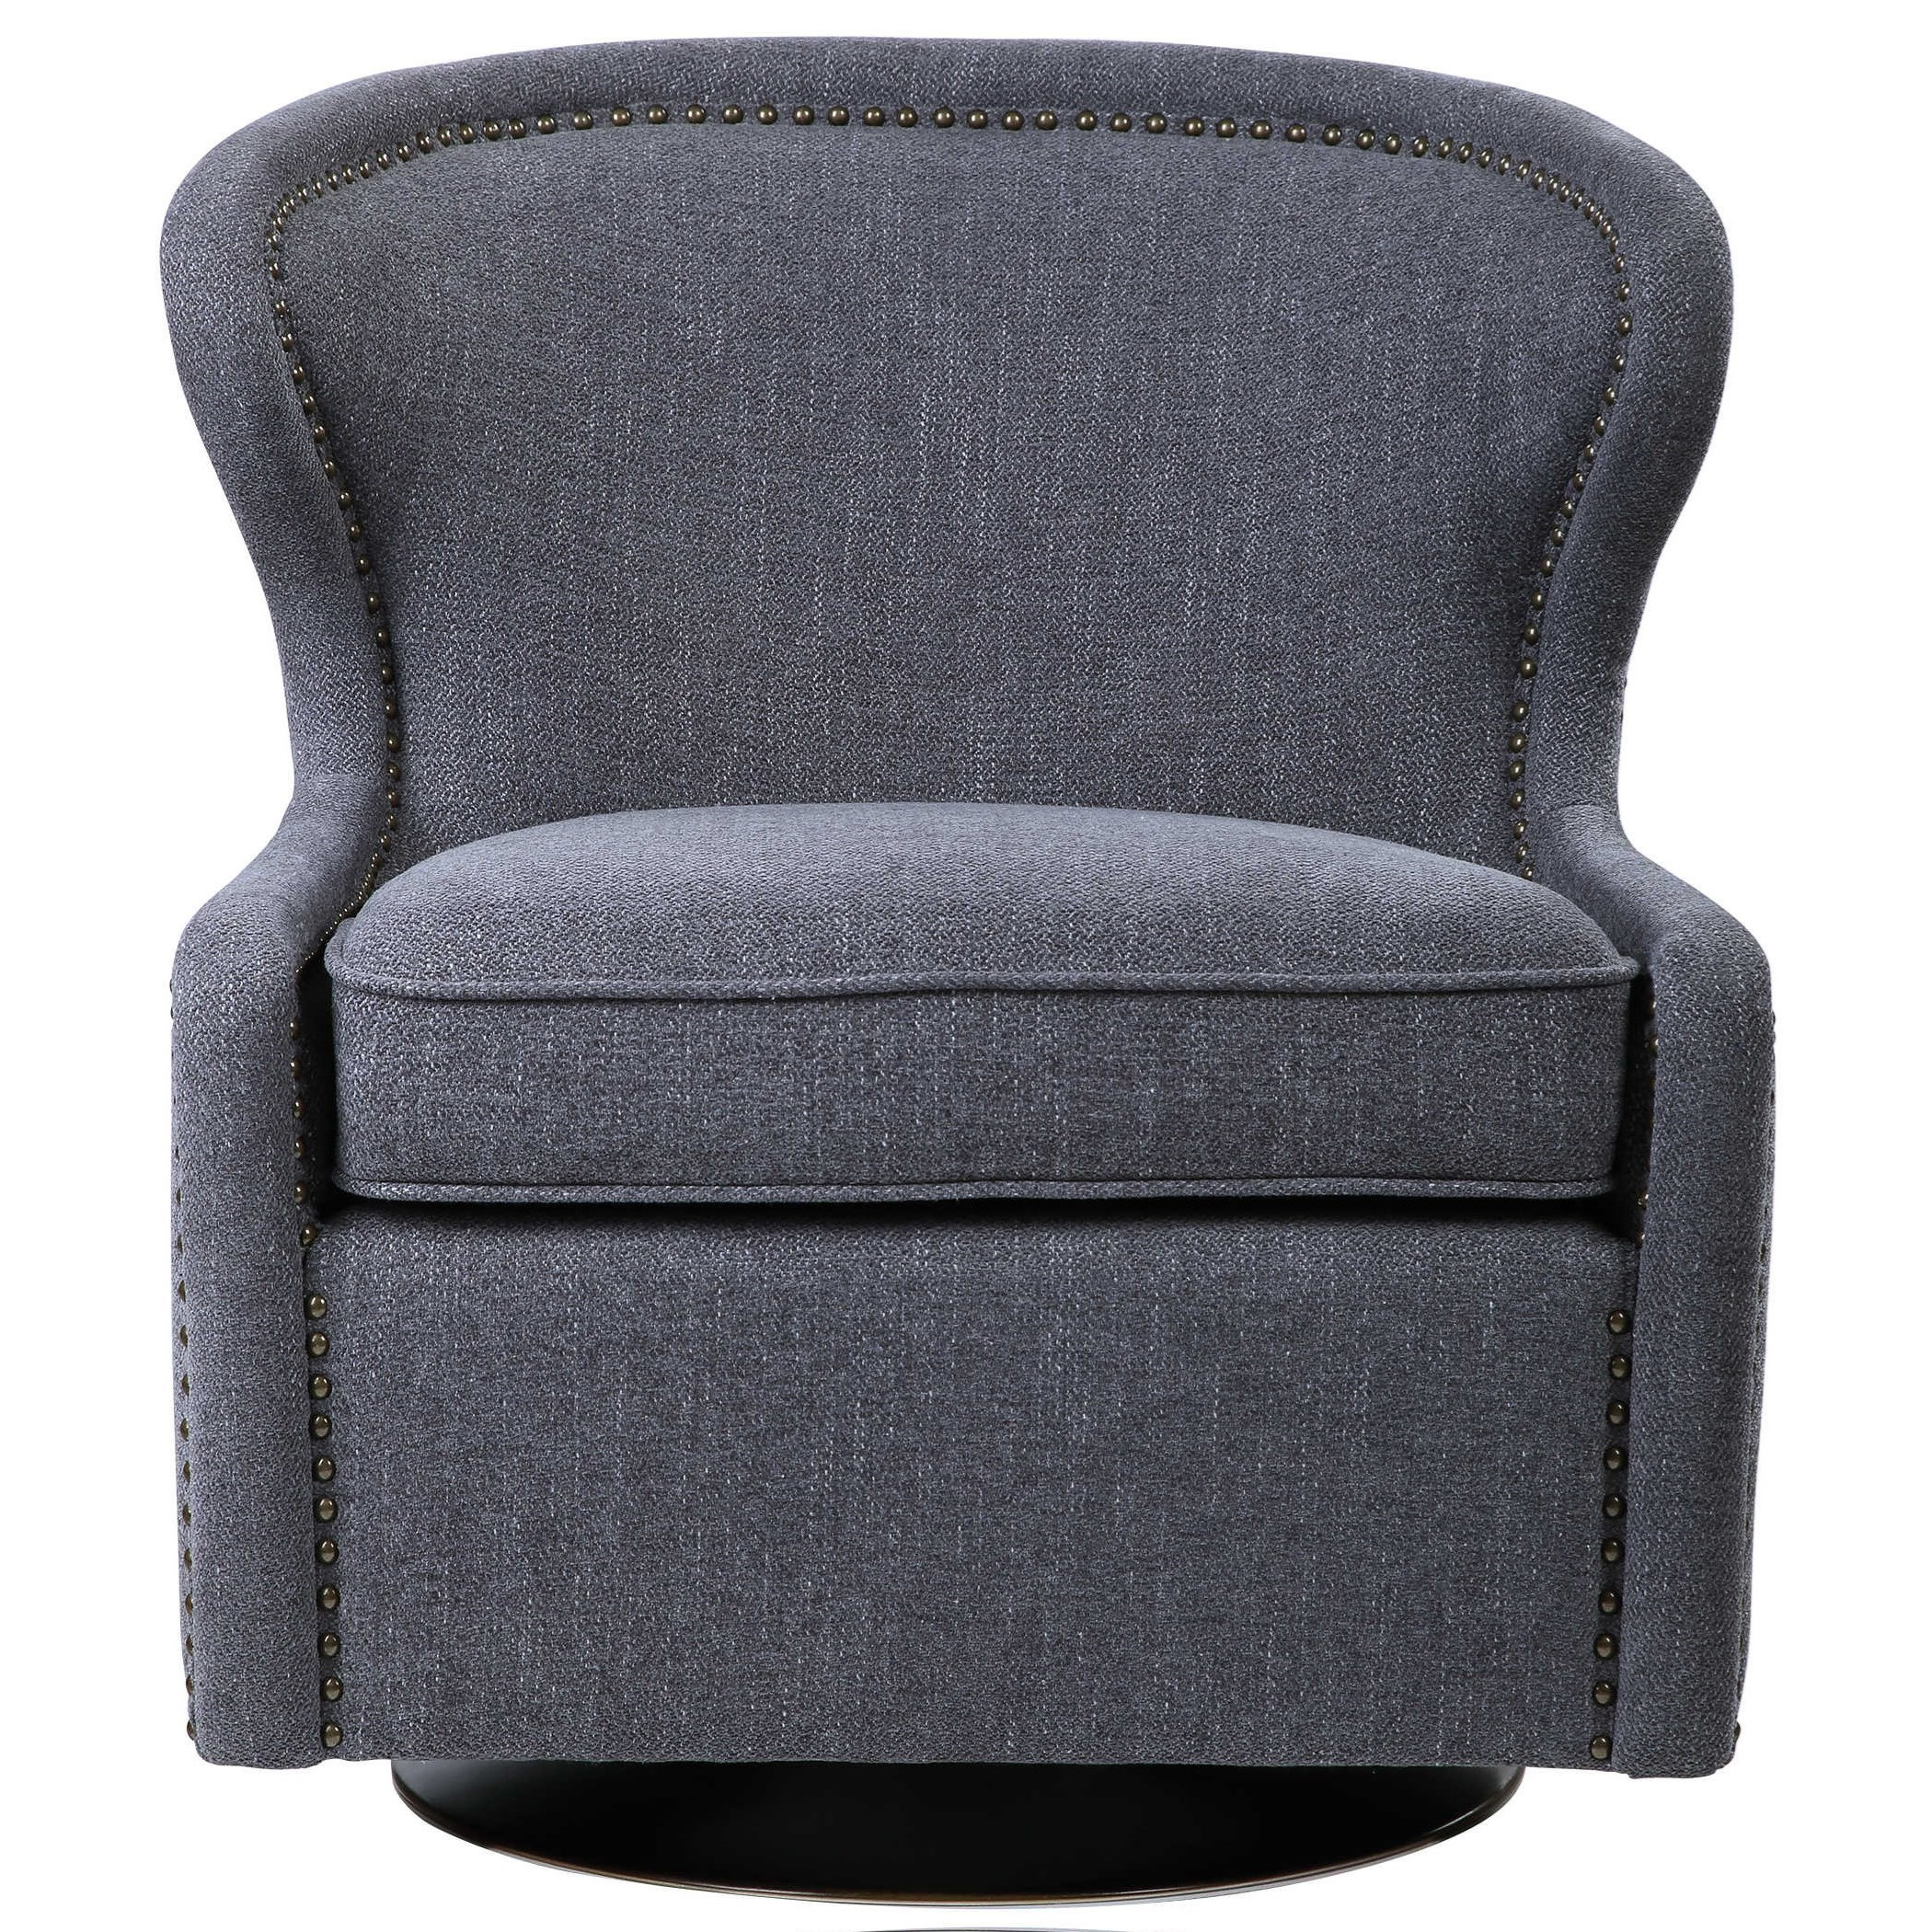 Accent Furniture - Accent Chairs Biscay Swivel Chair by Uttermost at Factory Direct Furniture